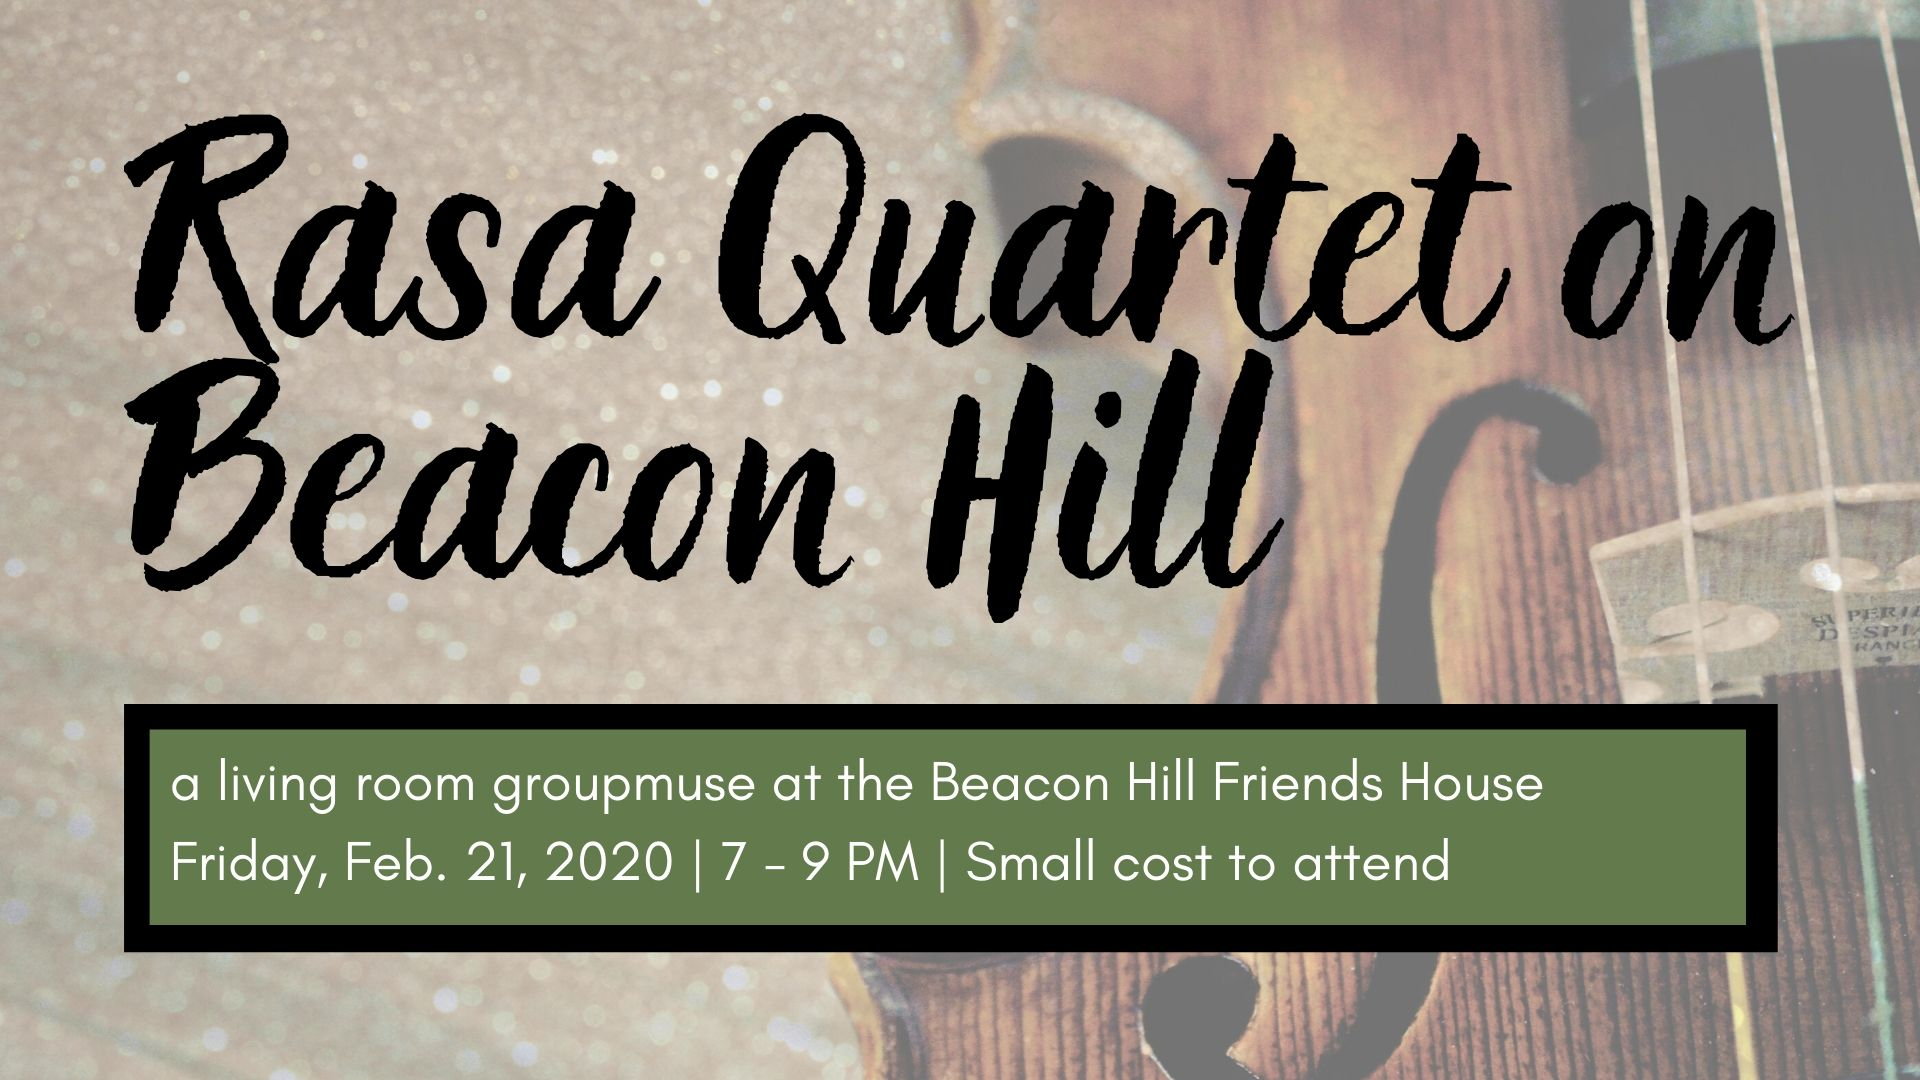 Rasa Quartet on Beacon Hill